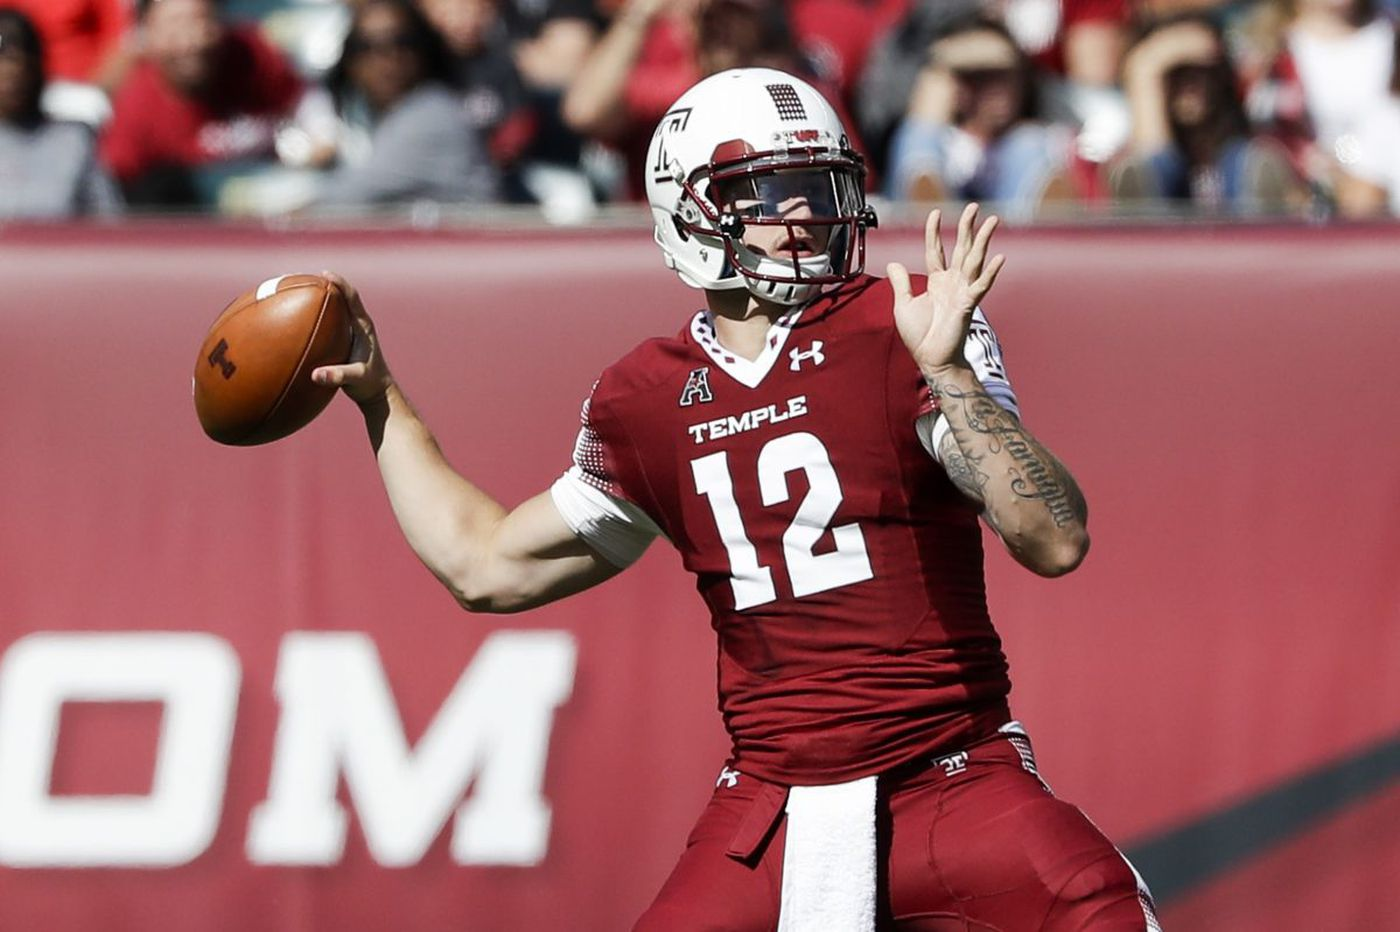 Temple remains 8th in AAC football power rankings